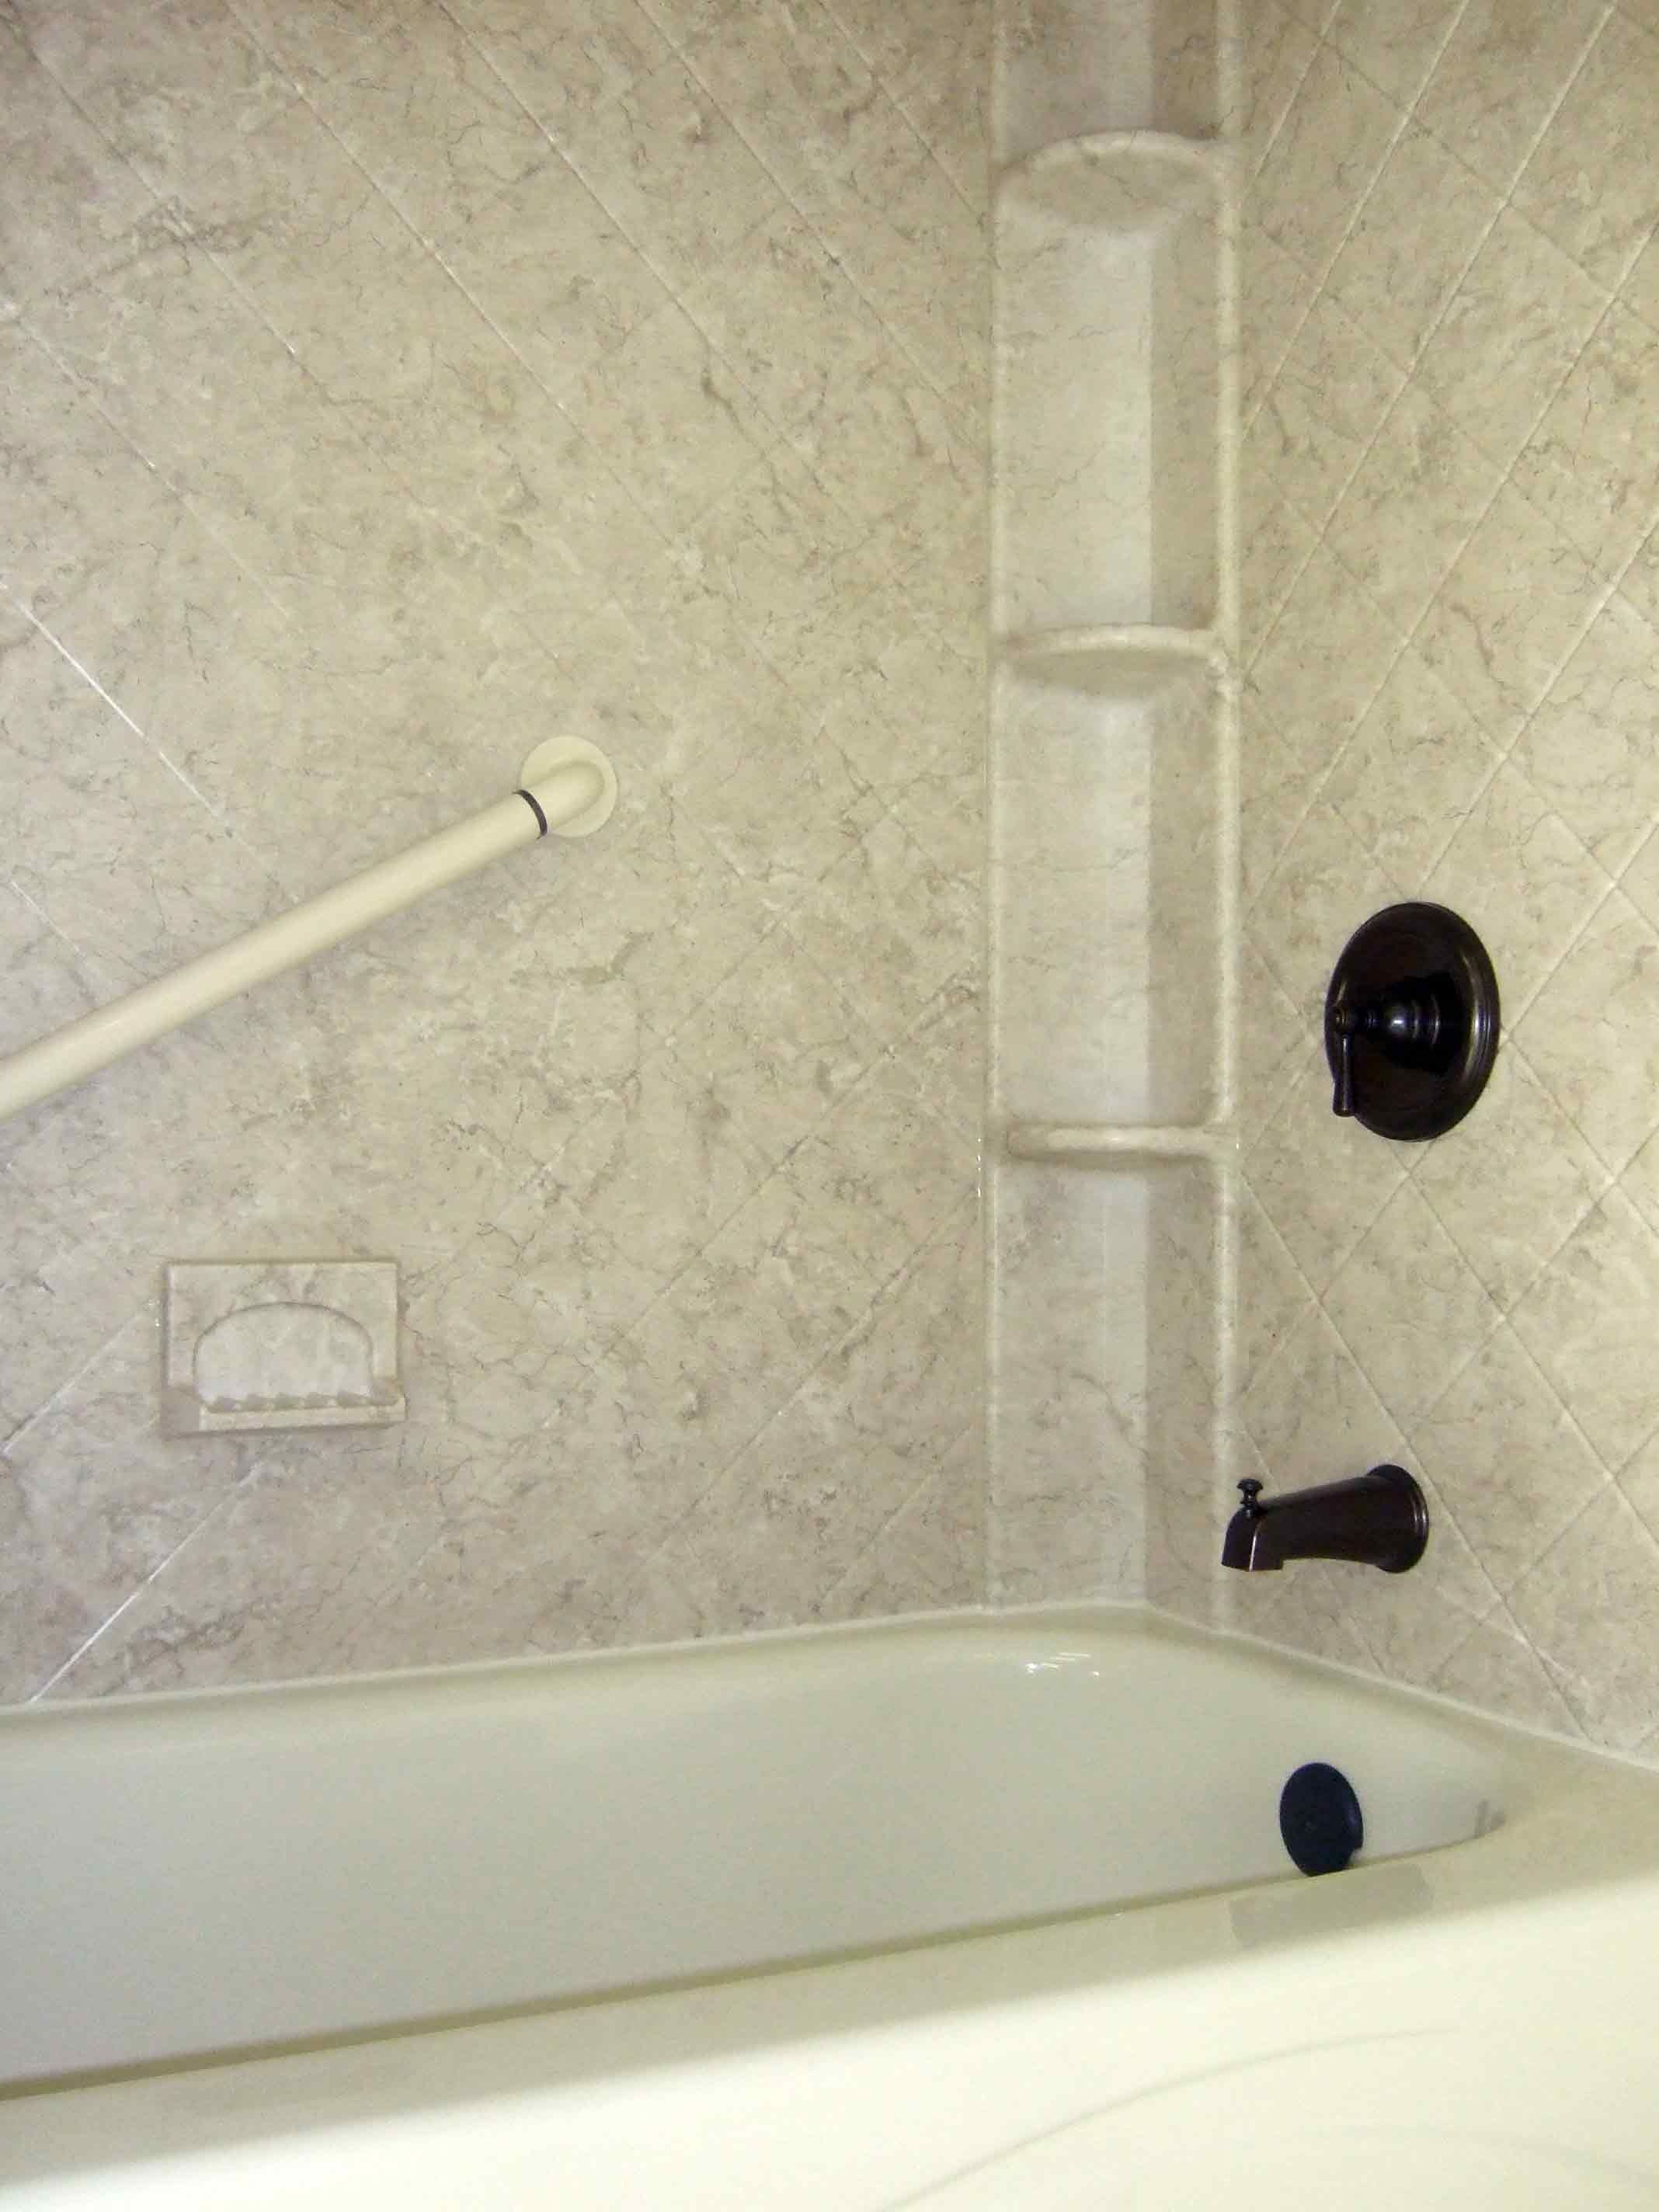 Acrylic Shower Walls With Breccia Pattern And Shower Caddy - Acrylic bathroom wall panels for bathroom decor ideas